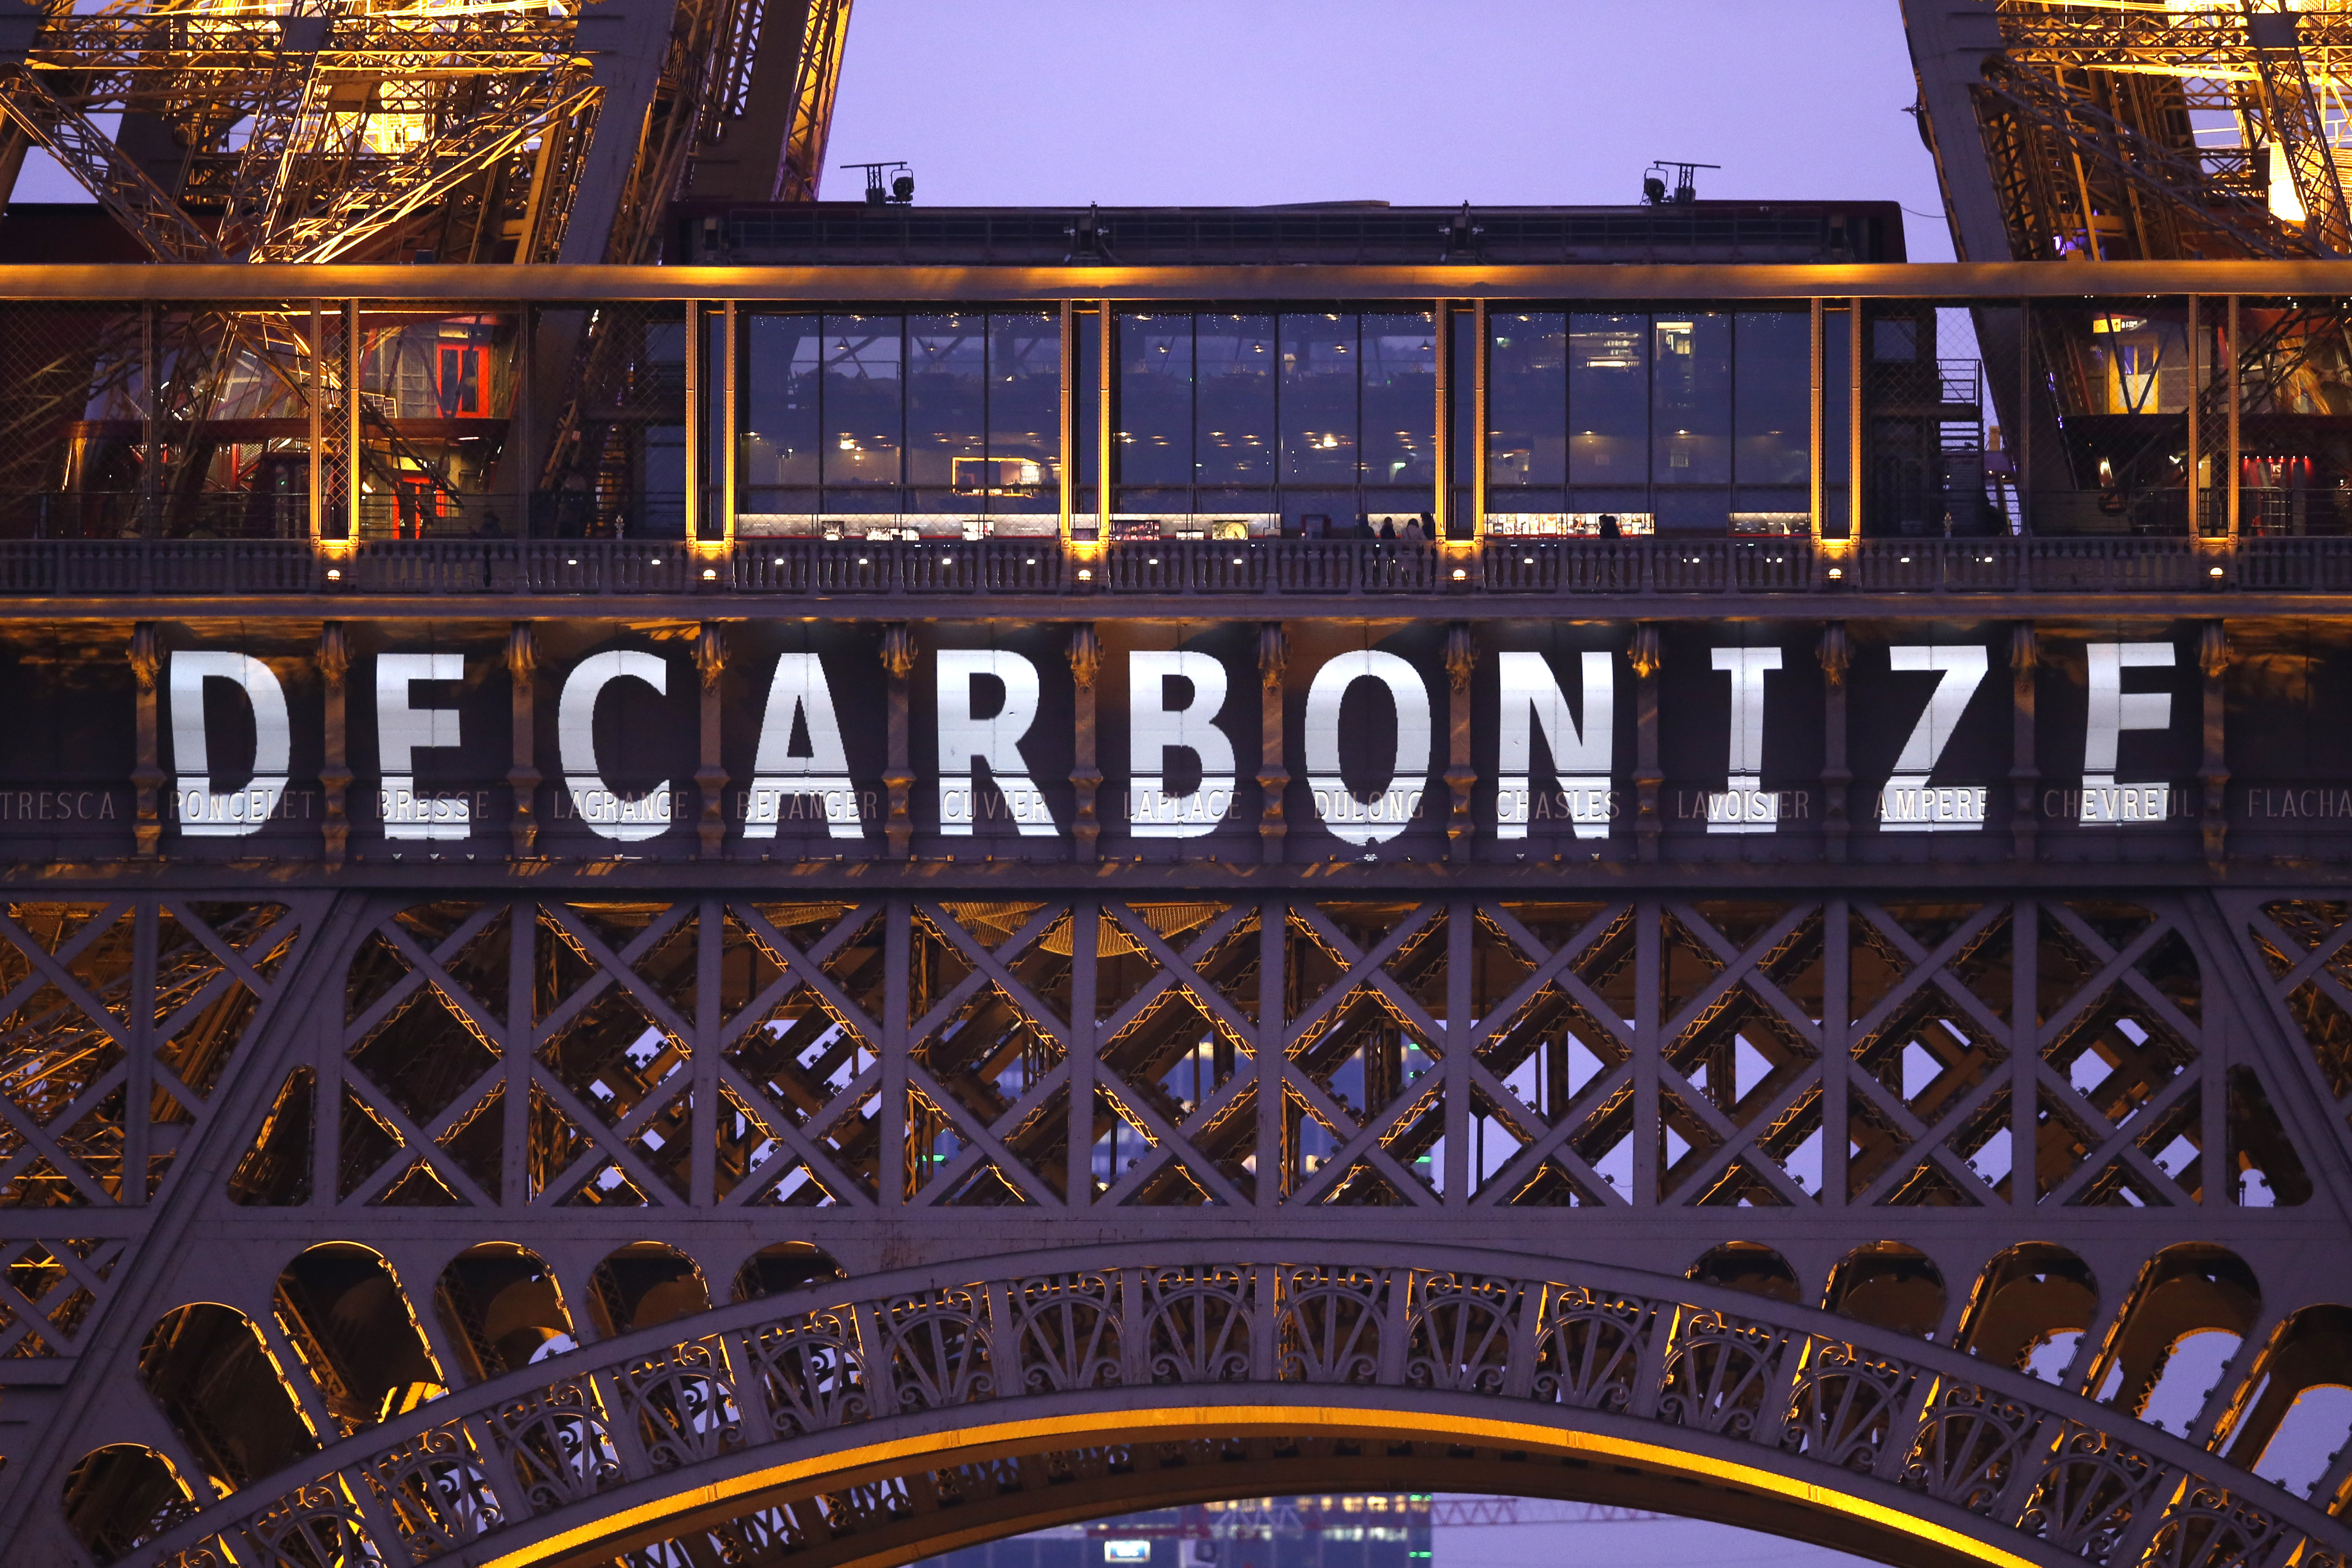 """The slogan """"Decarbonize"""" is projected on the Eiffel Tower as part of the World Climate Change Conference 2015 (COP21) in Paris, France, December 11, 2015.   REUTERS/Charles Platiau - LR1EBCB1BVQ2S"""